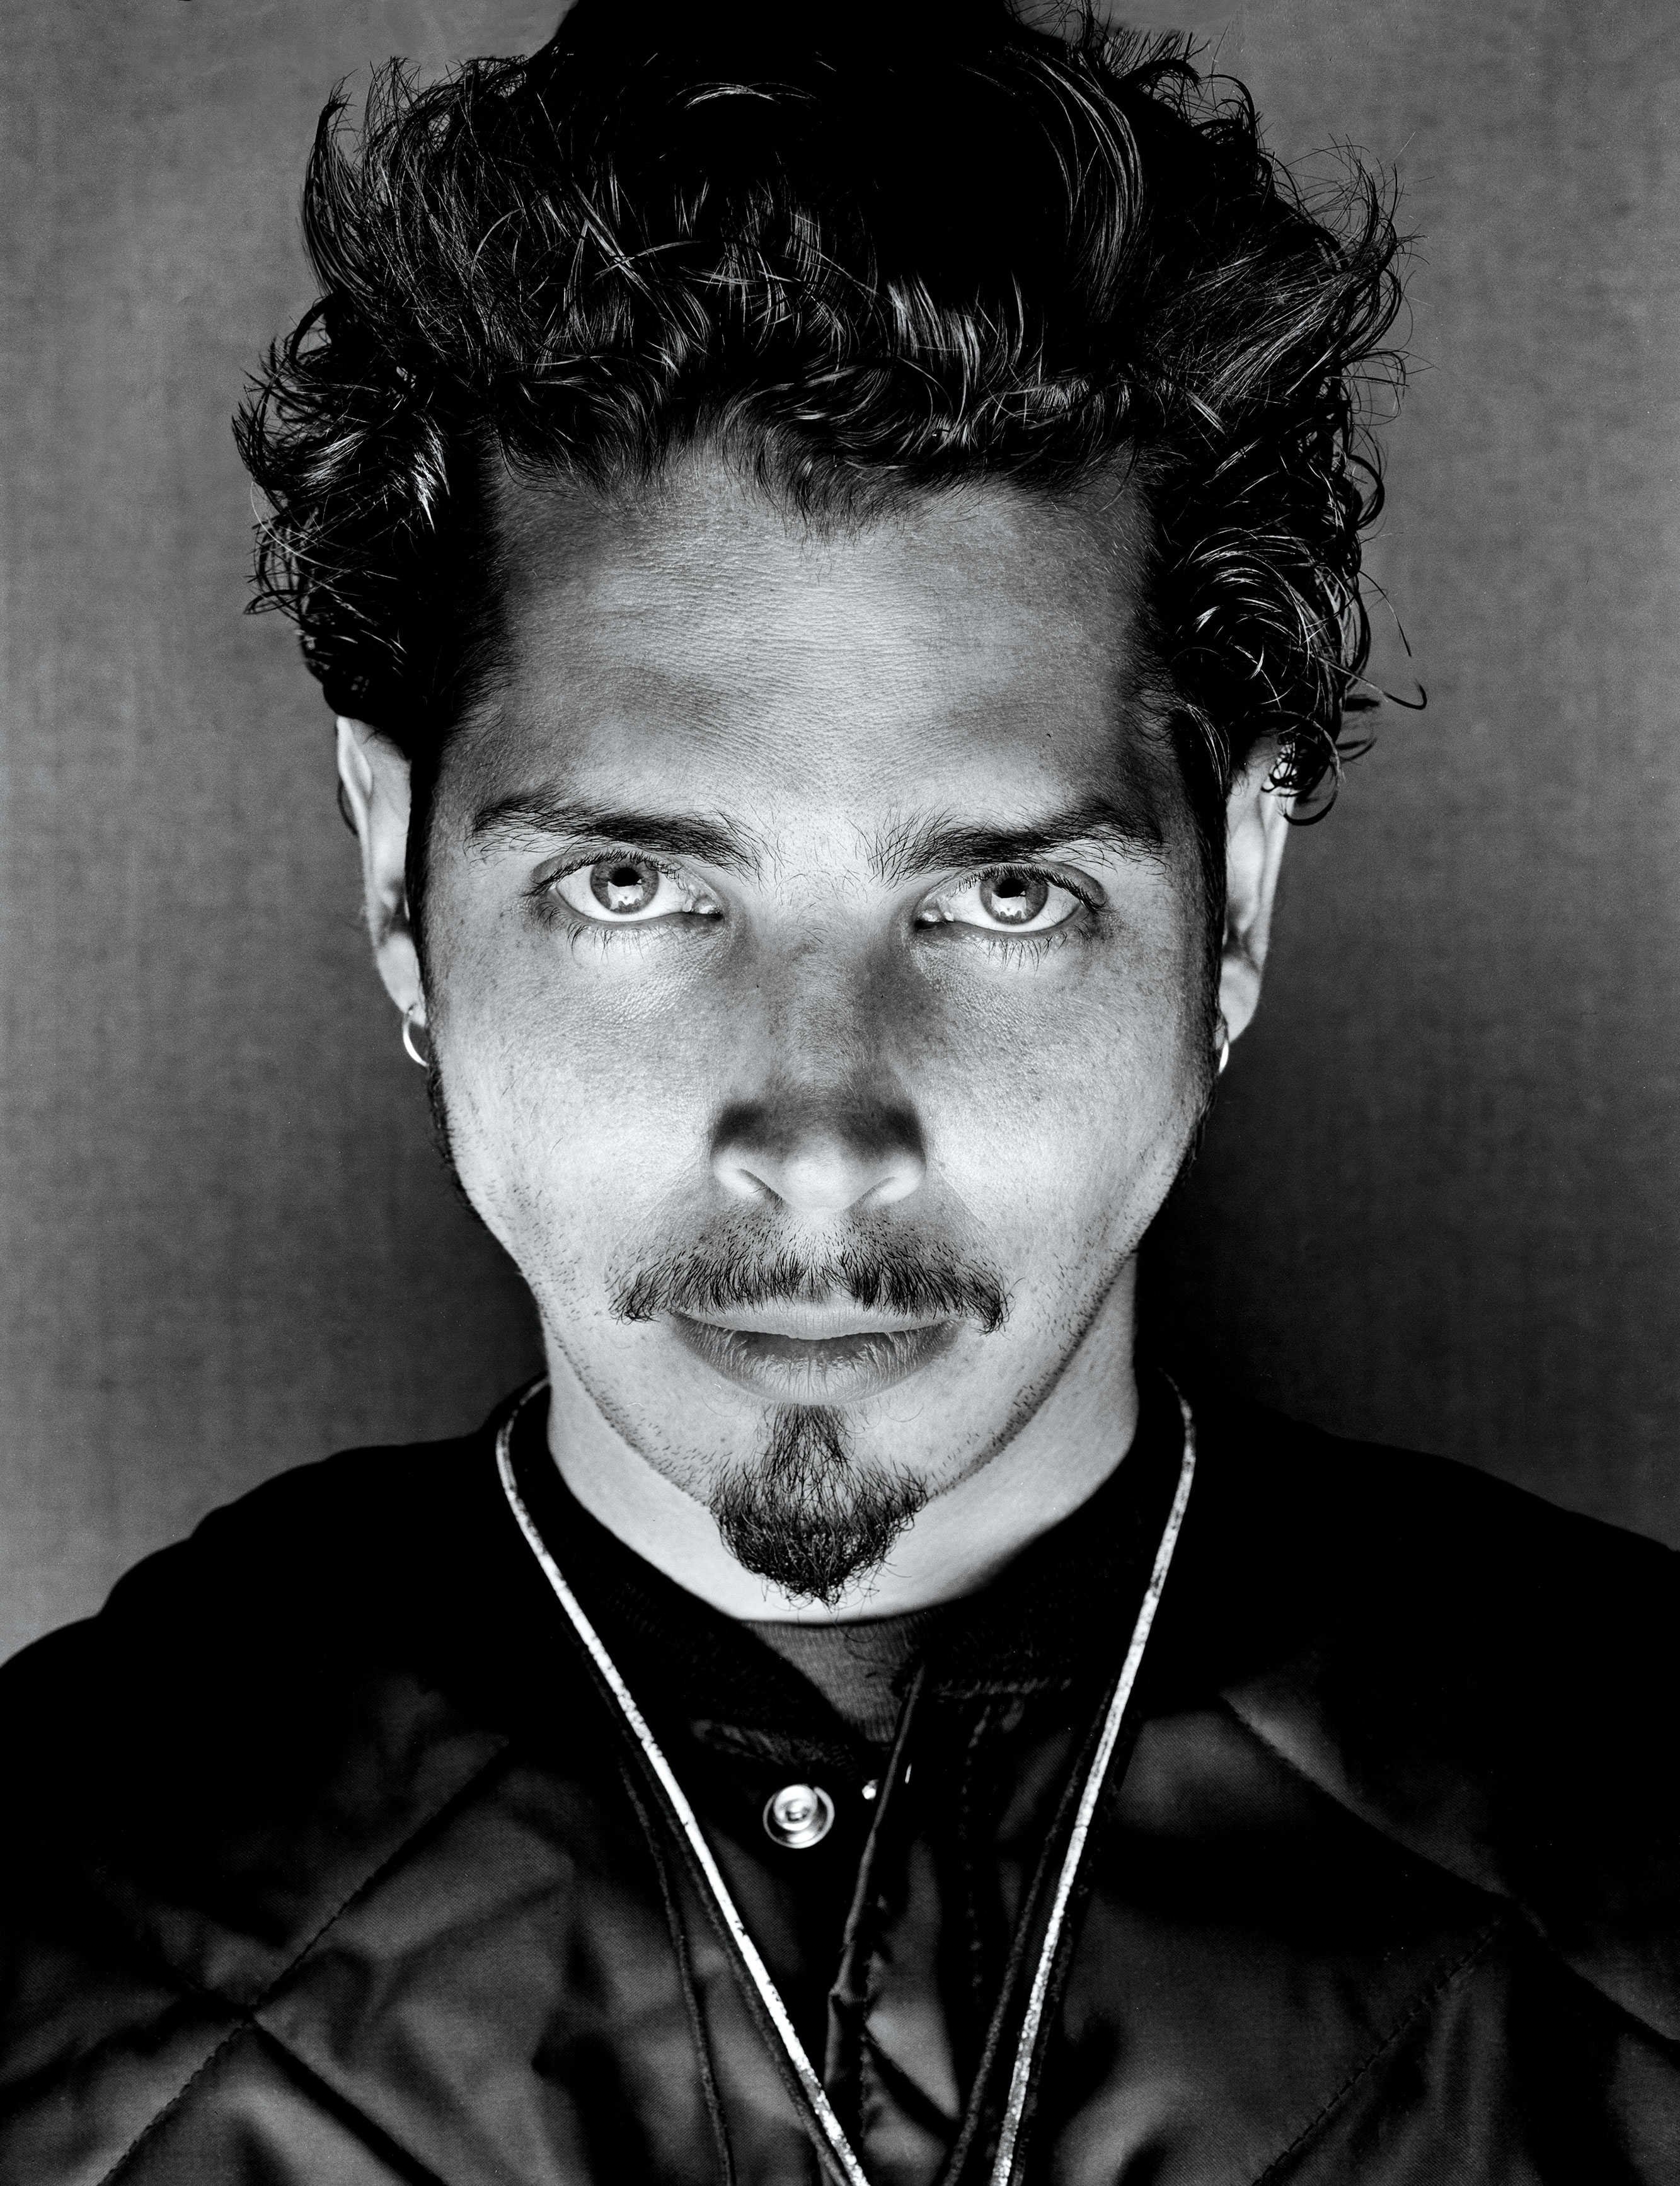 That bloke from audioslave to do casino royale theme tune